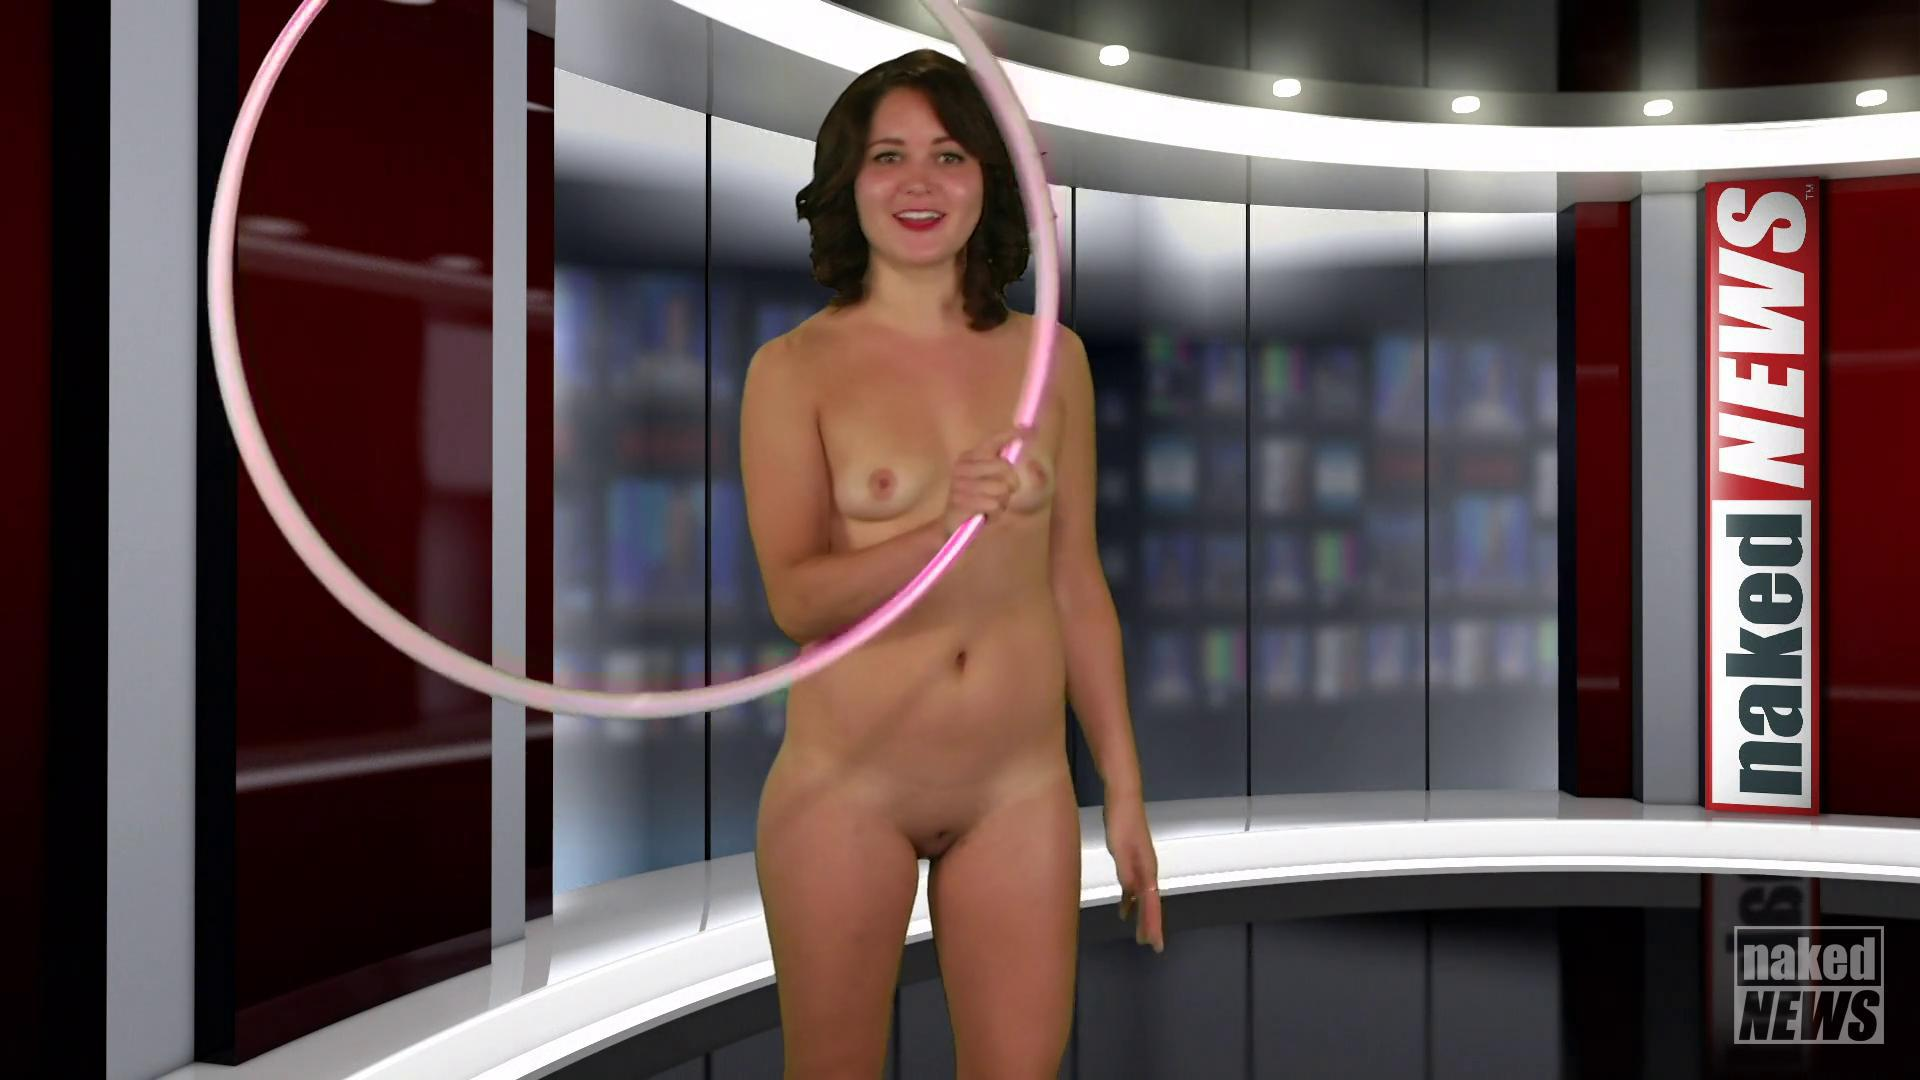 Anchor who once appeared nude for story hired